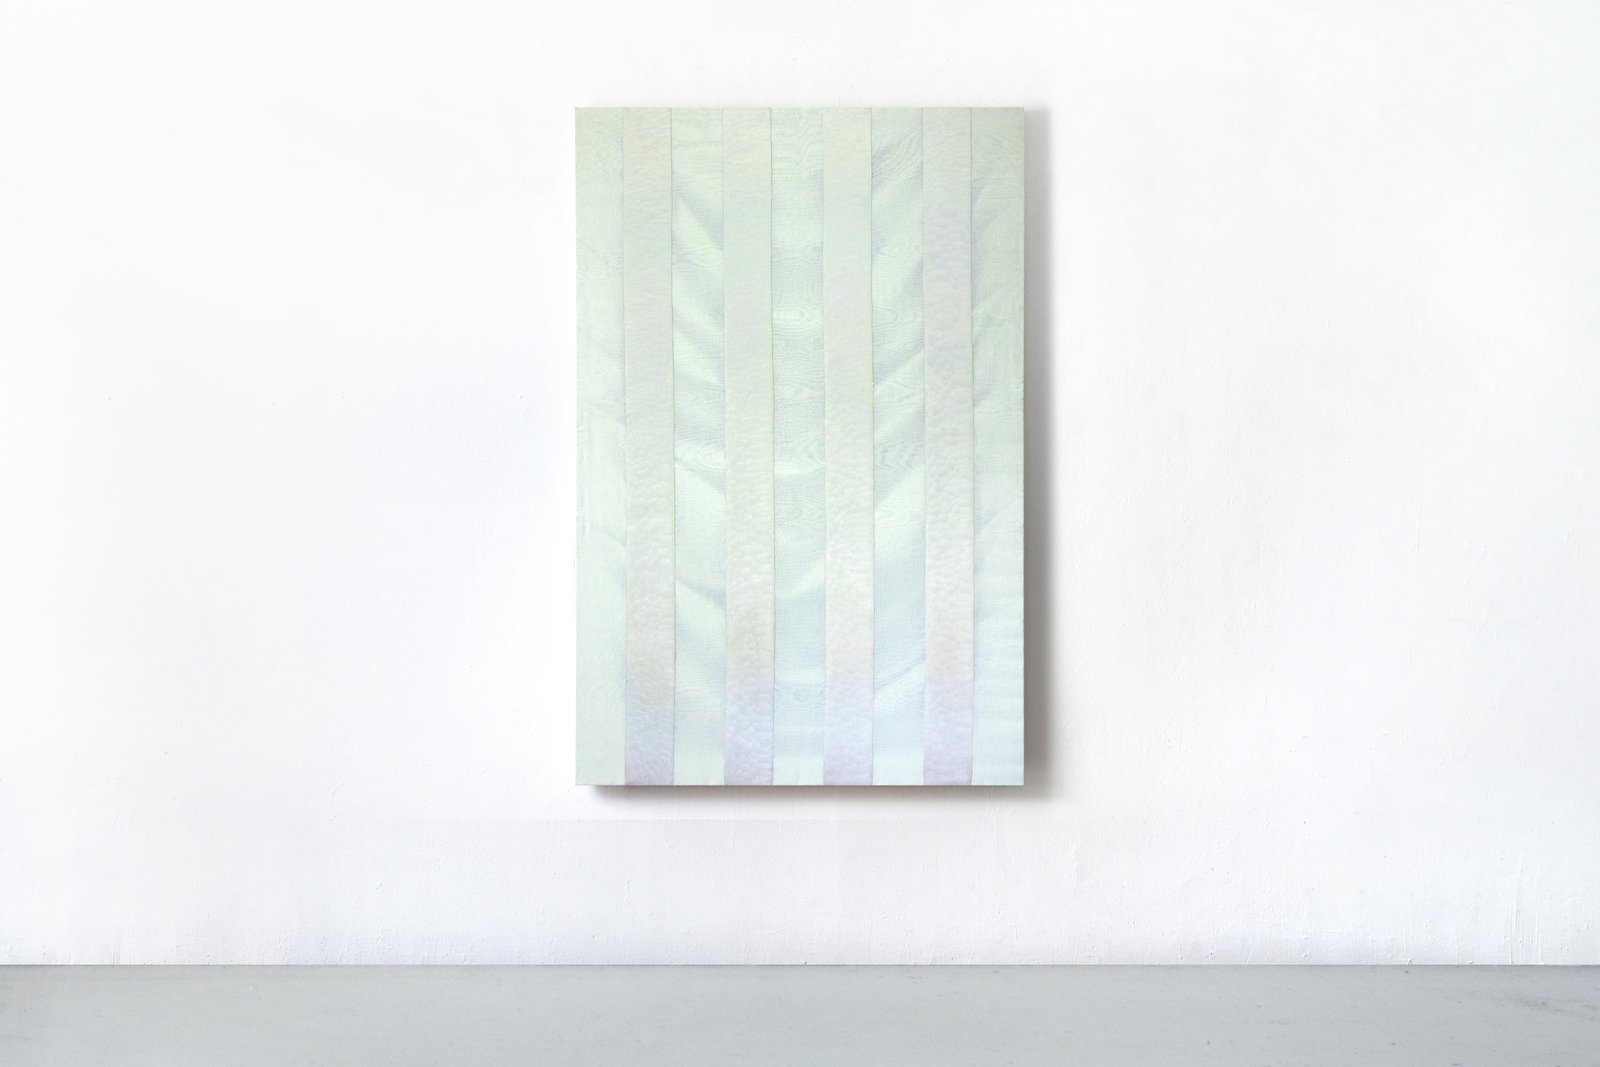 Martine Poppe, A place Id like to be, 2019, 150 x 100 cm oil on cotton